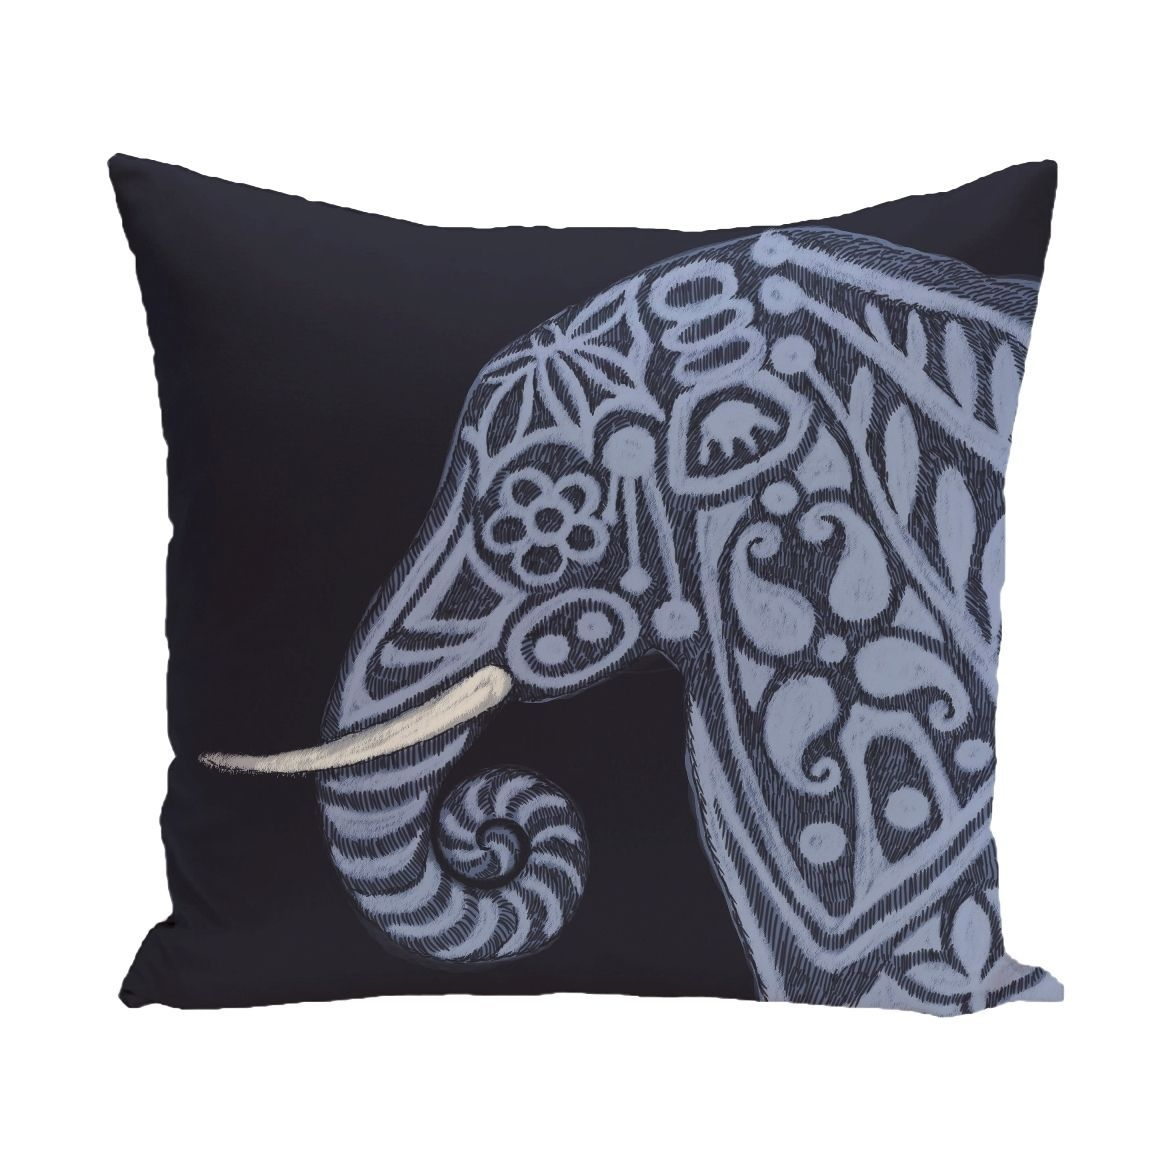 E by design x inch grey brown inky animal print pillow